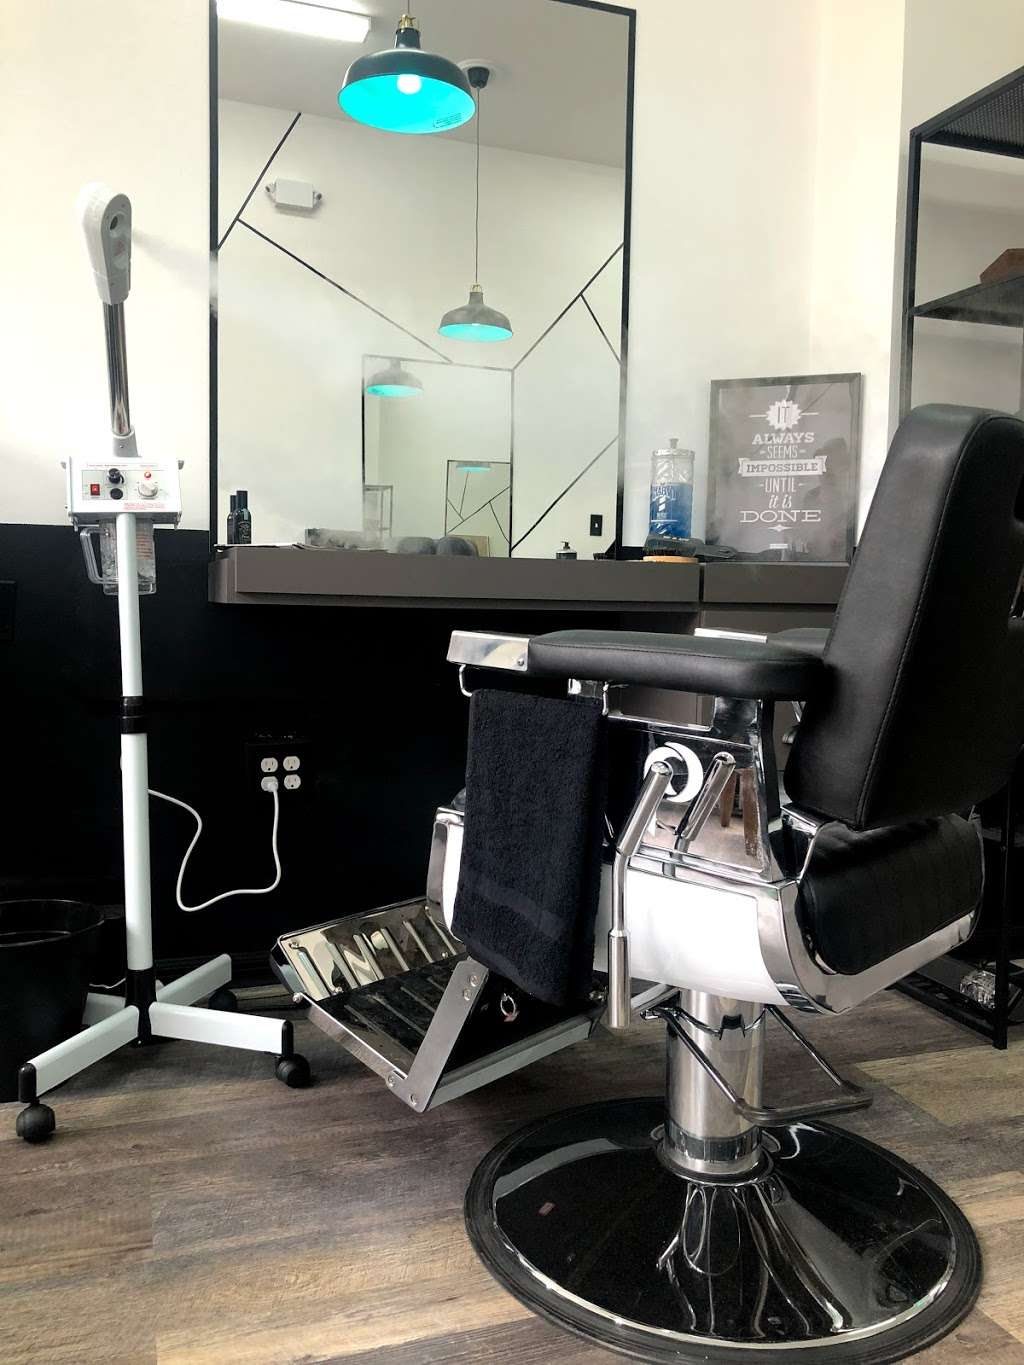 Level Up Grooming Studio - hair care    Photo 2 of 10   Address: 3531 3rd Ave Store 1A, The Bronx, NY 10456, USA   Phone: (347) 591-5213